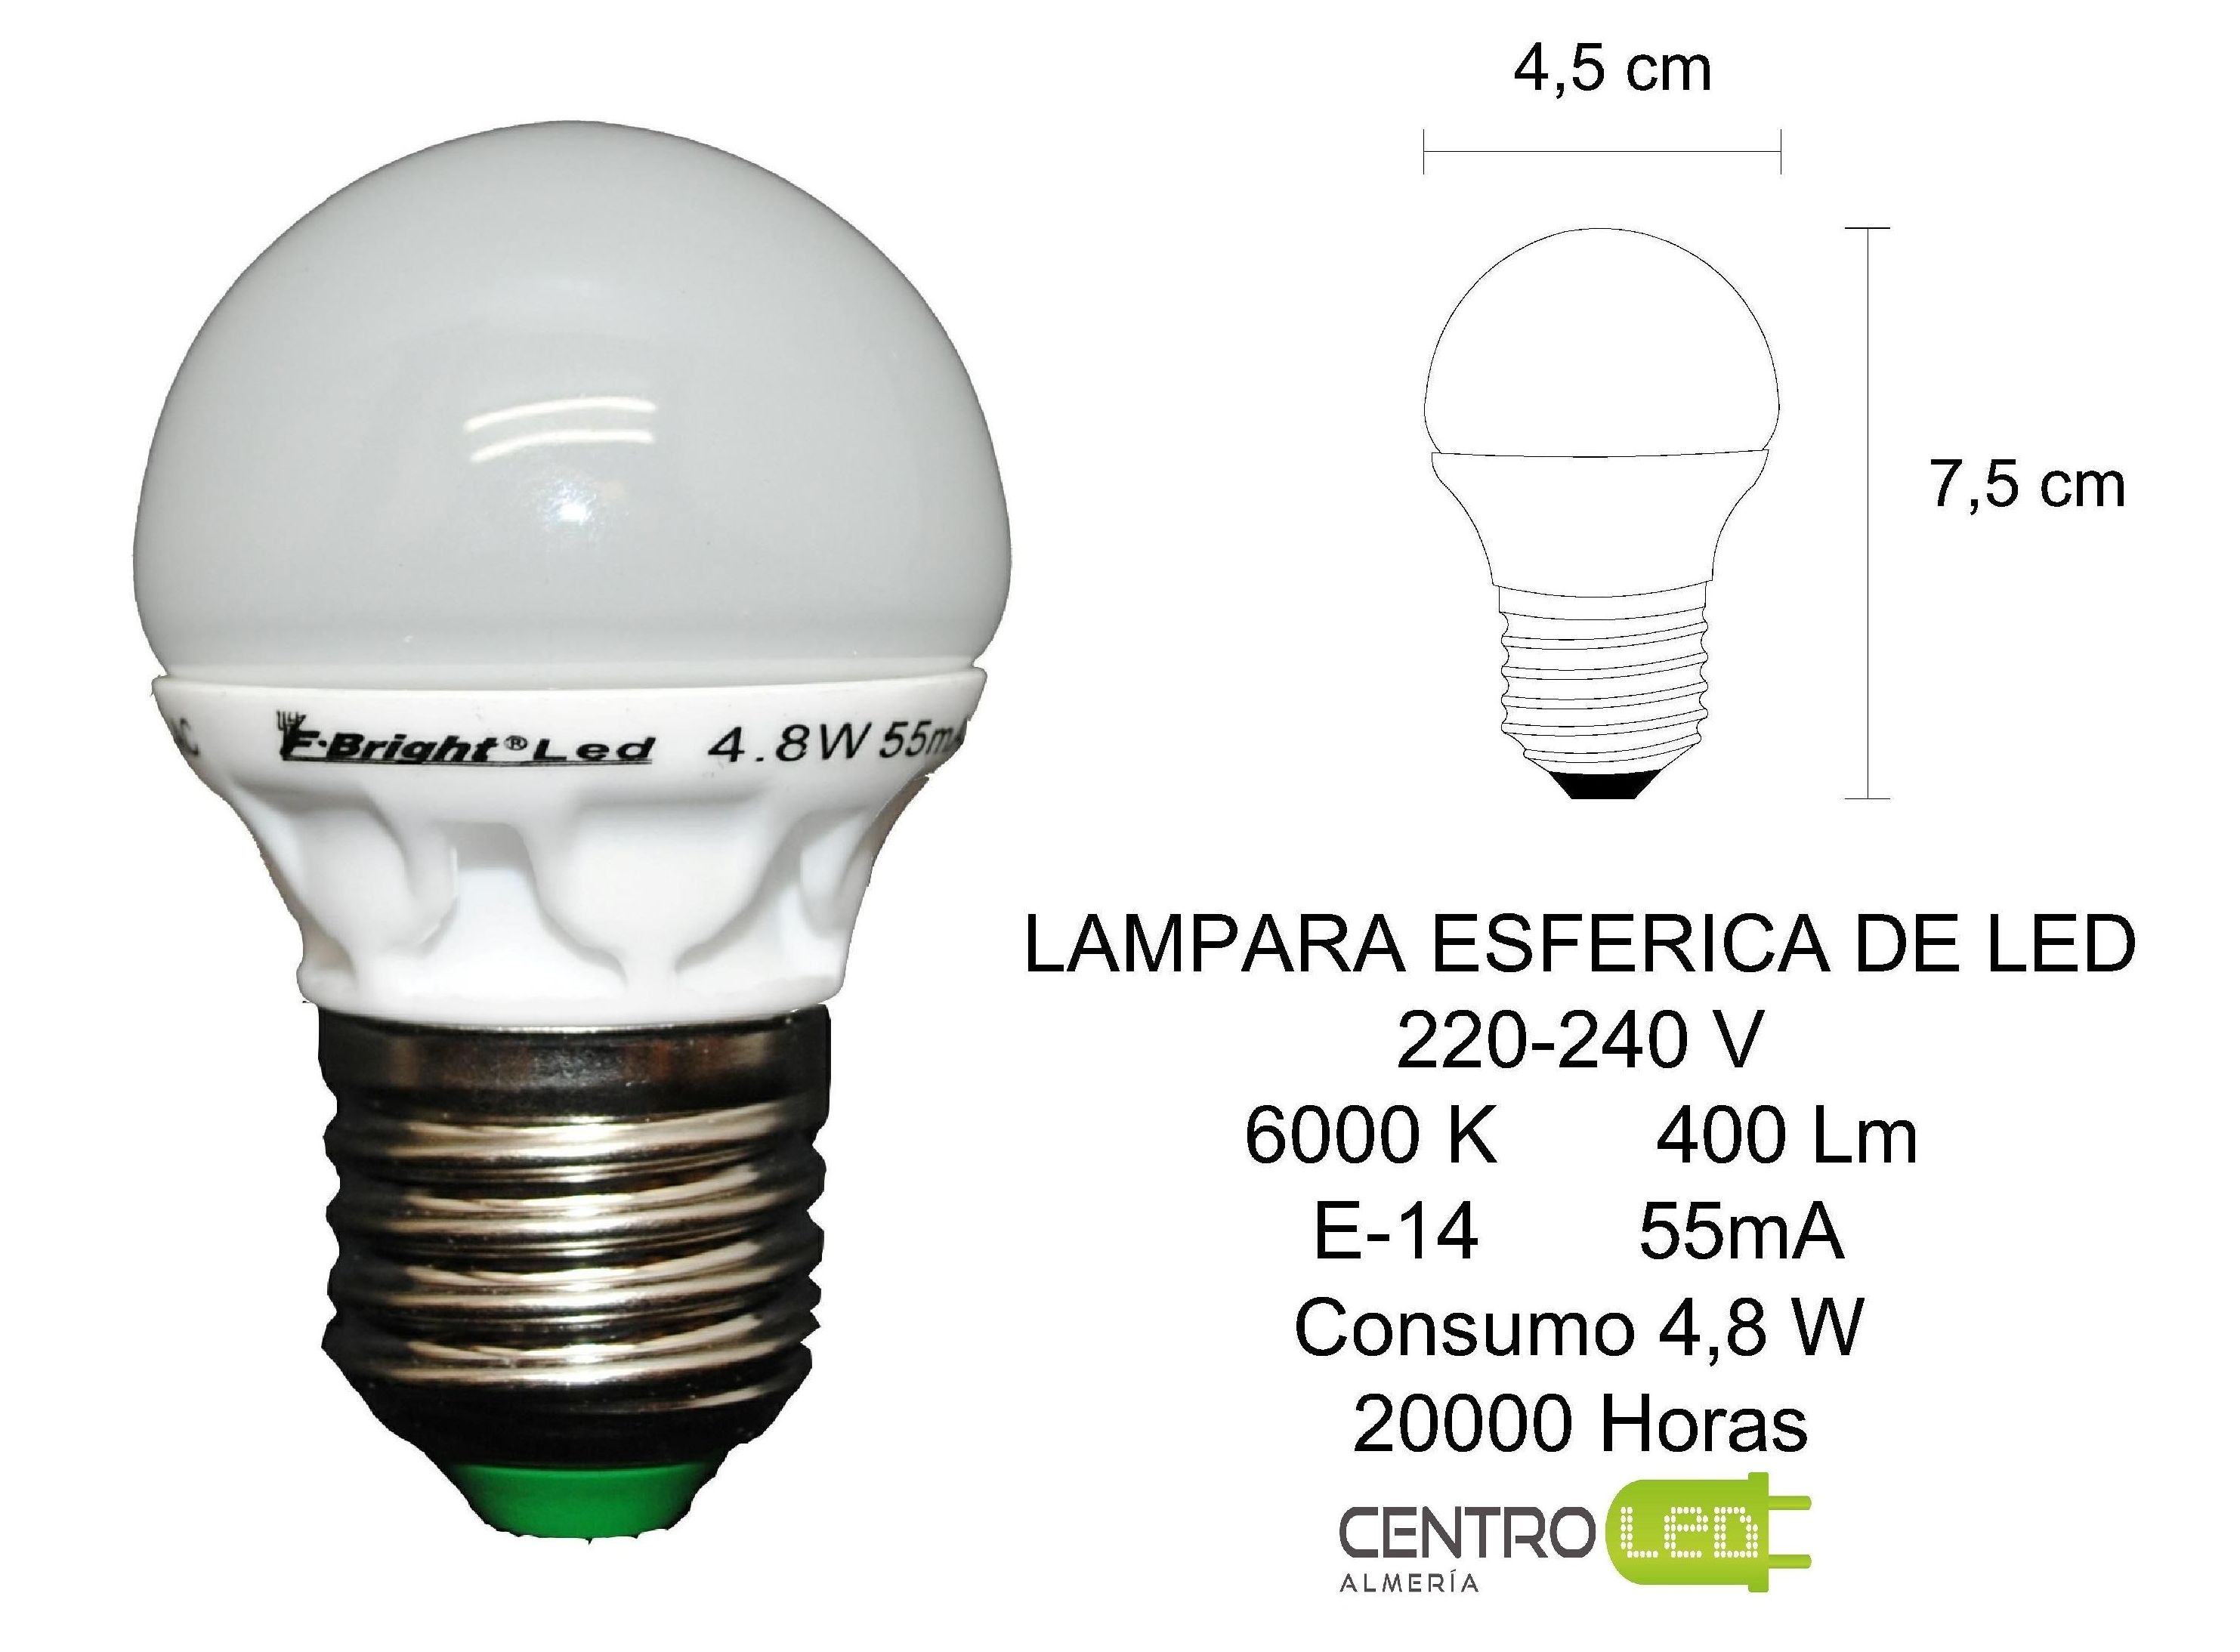 Lamparas Led 220 Lampara Esferica Productos De Centro Led Almería